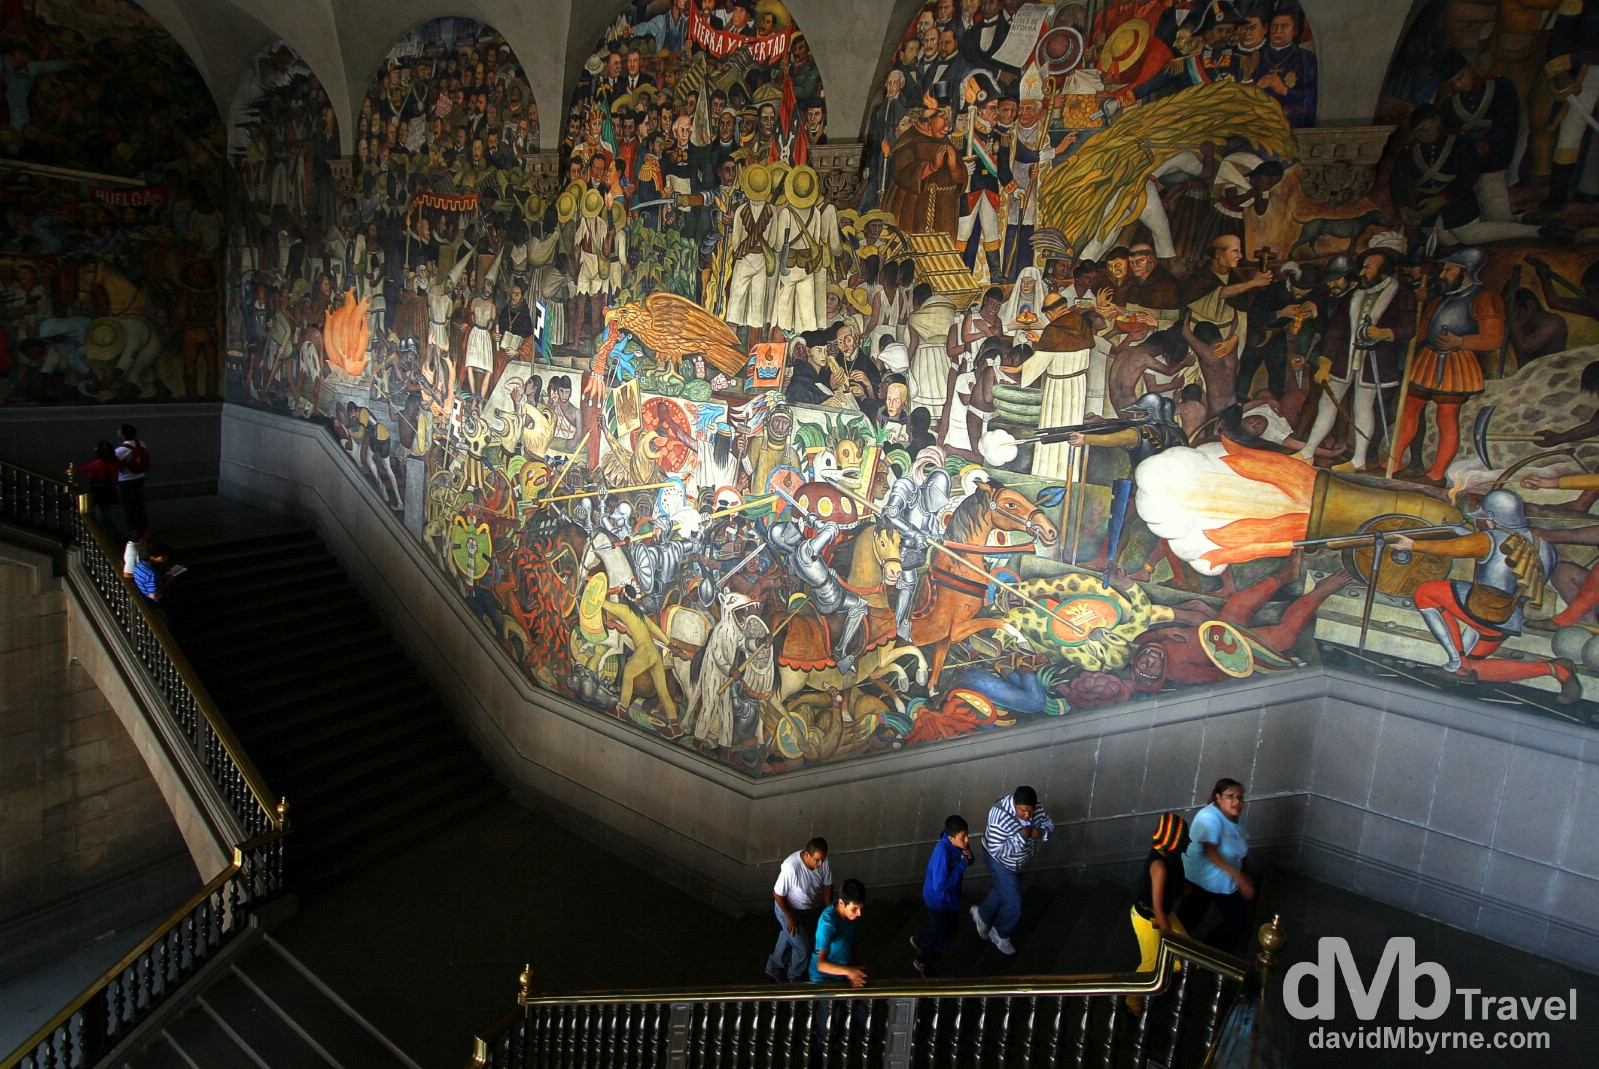 Murals from Diego Rivera, one of Mexico's most famous artists of recent years, adorn the main staircase of the Palacio Nacional (The National Palace), the home of the offices of the Mexican President (Rivera murals can be found in numerous other buildings in the city). Centro Historico, Mexico City. April 28th 2013.